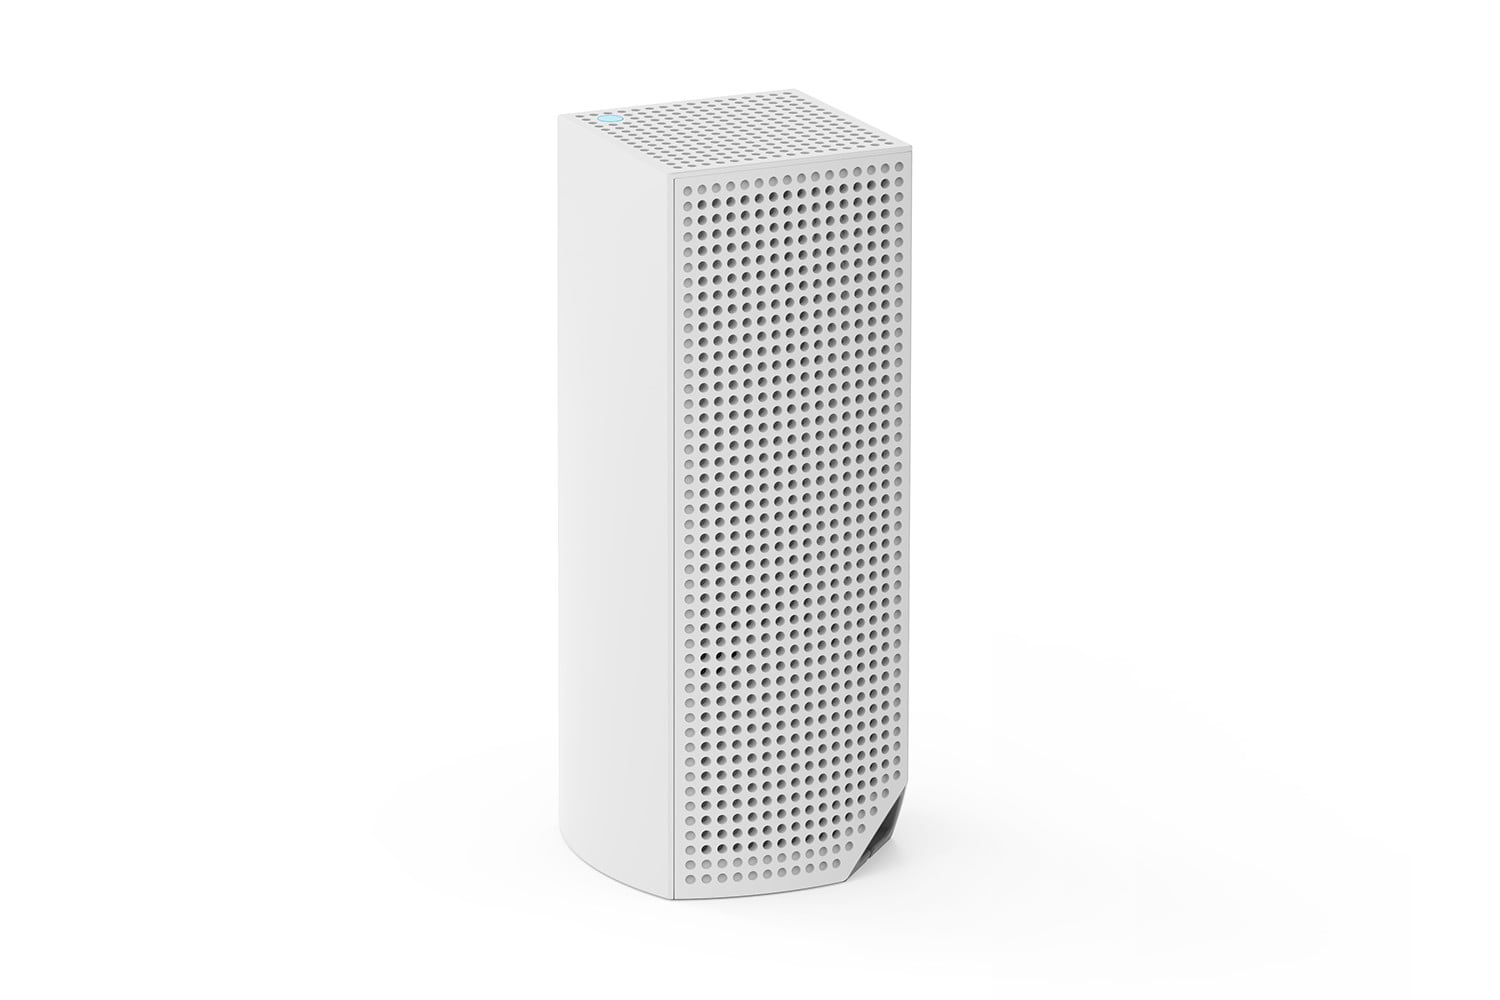 linksys velop router ces2017 back